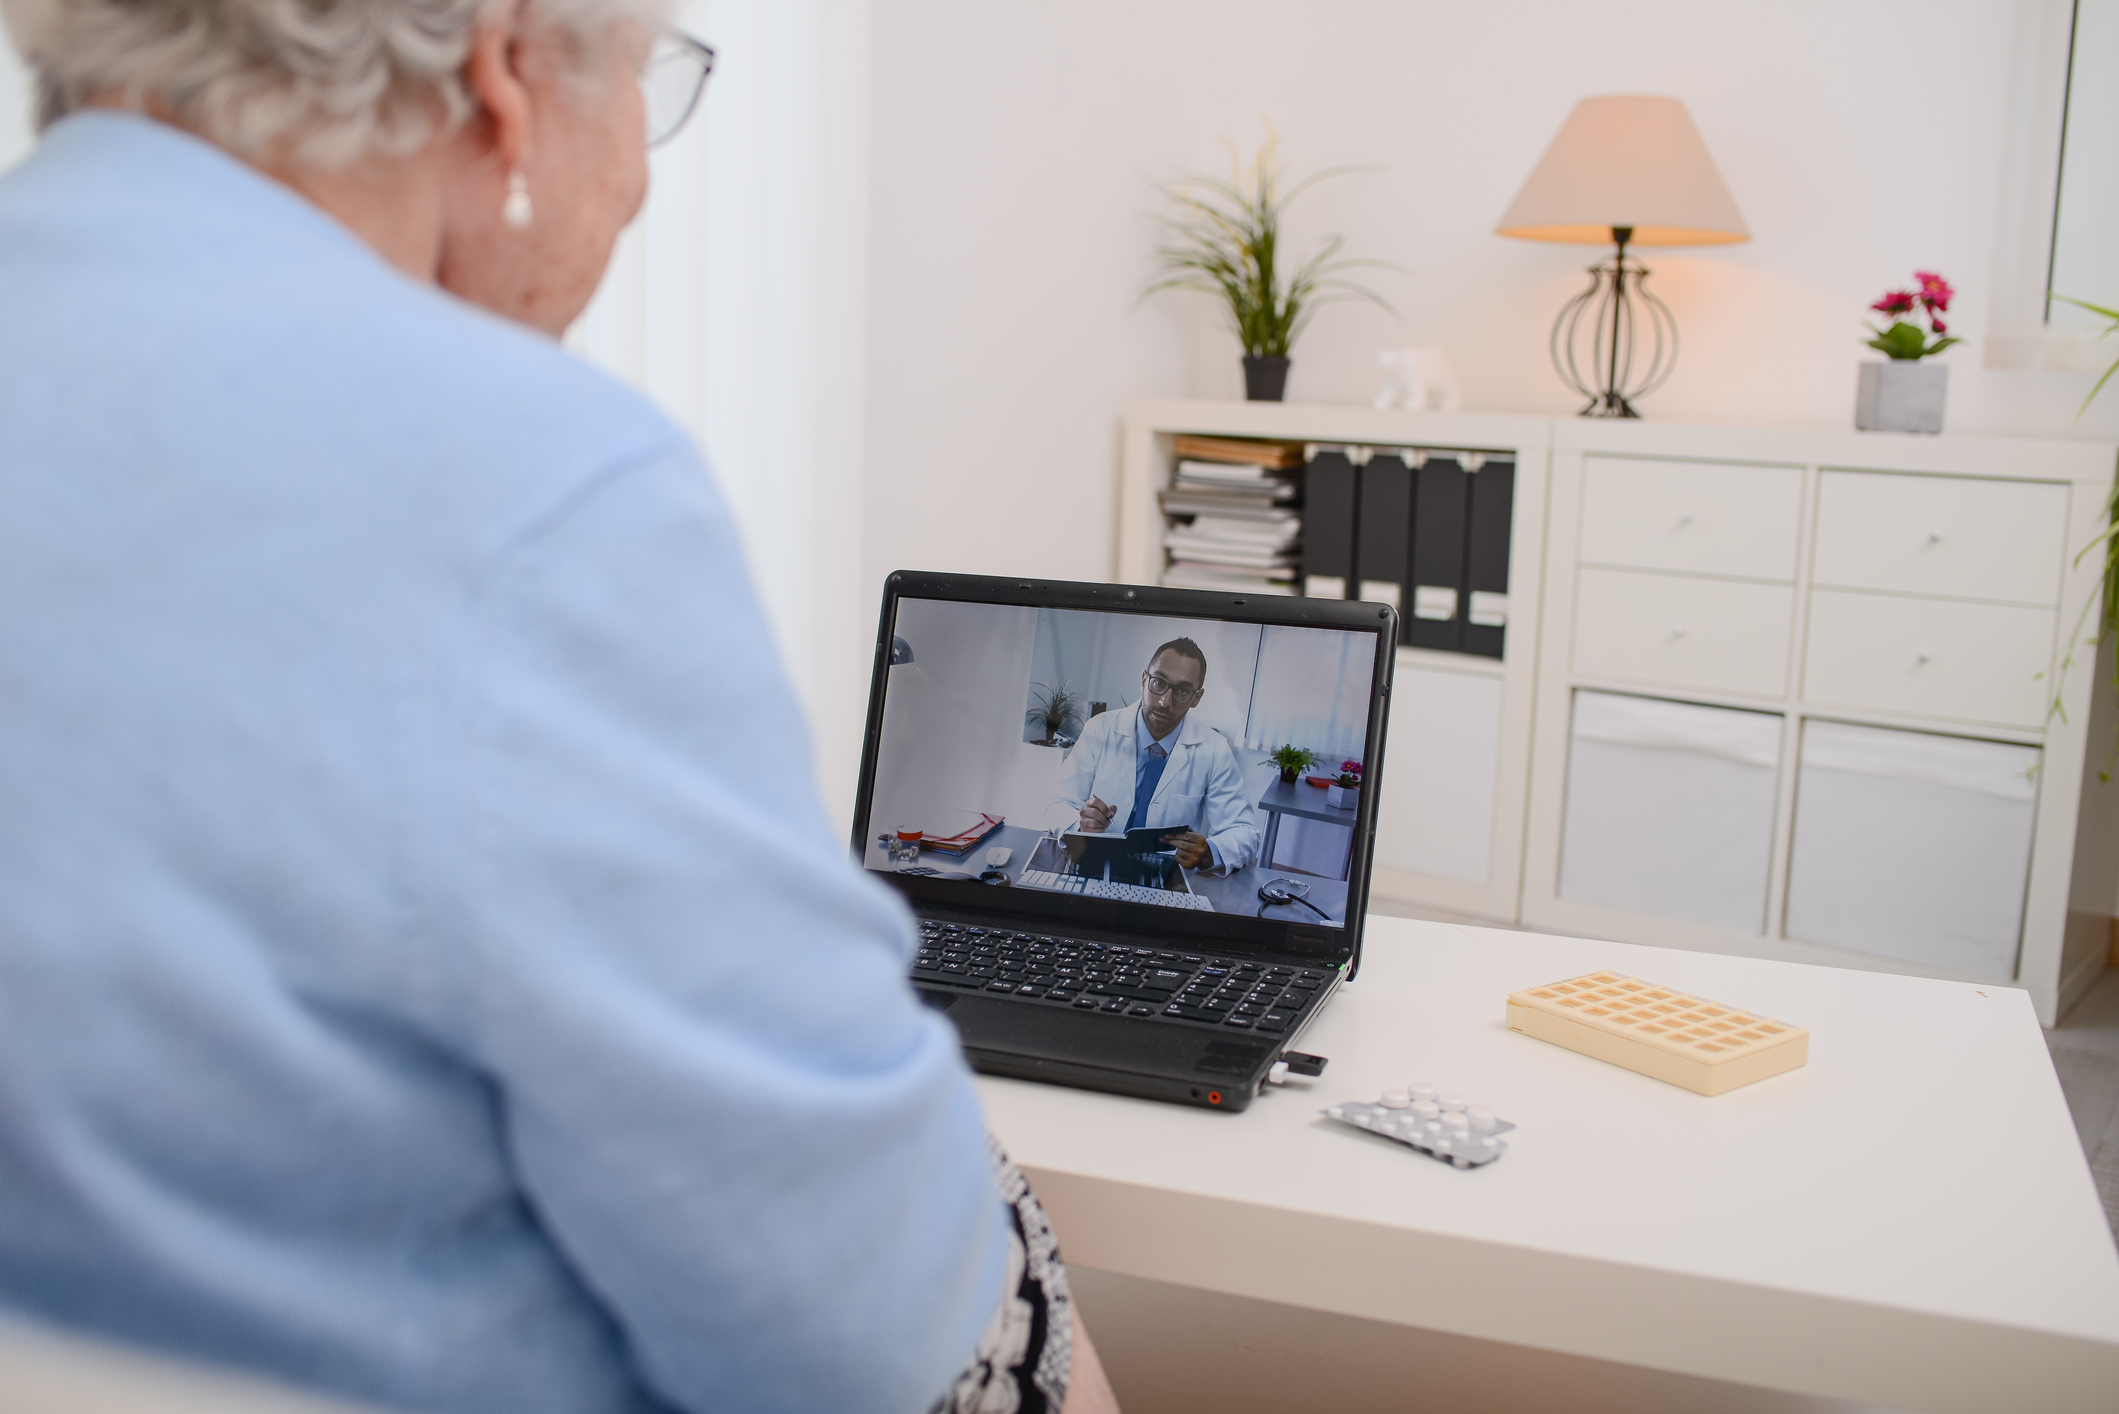 Older woman videochatting with a male physician on her laptop